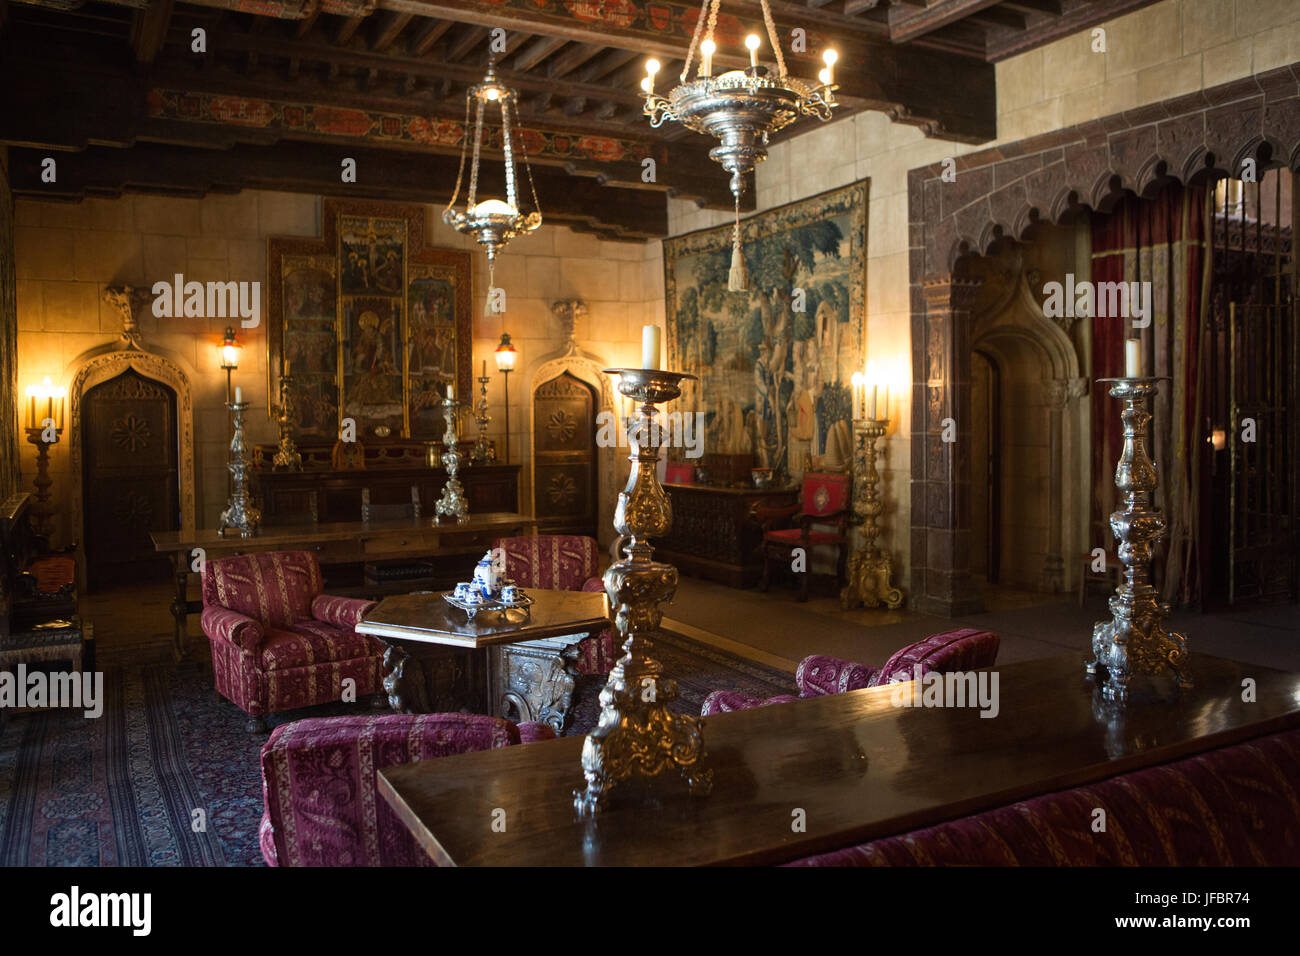 The Hearst Castle sitting room decorated with furniture, tapestries, artwork, ornate candles and light fixtures. - Stock Image